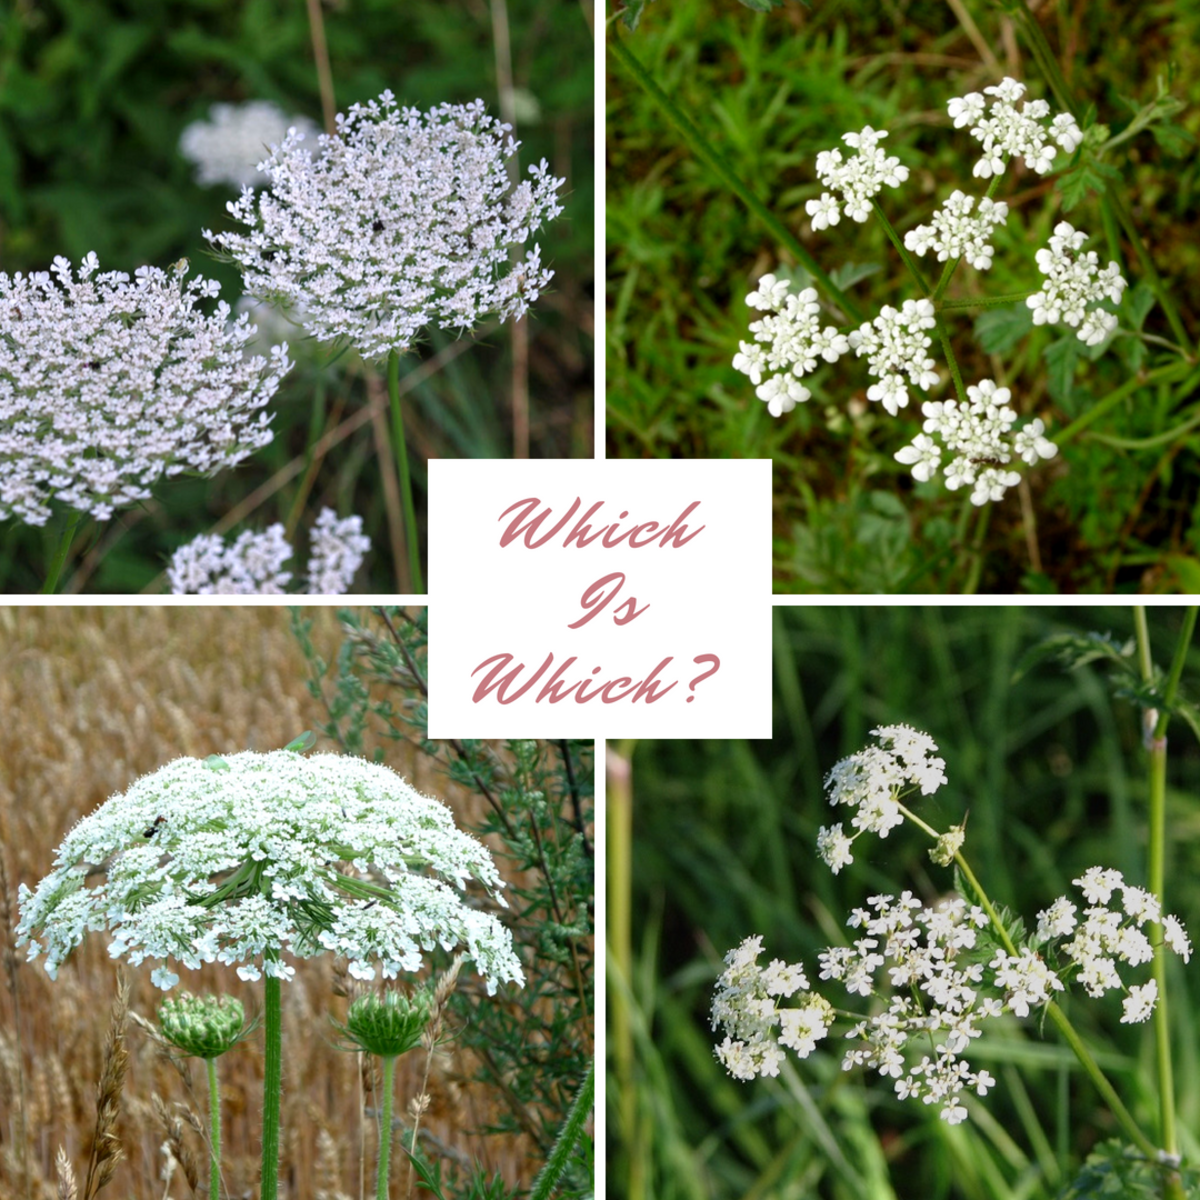 Answers: Top left: Queen Anne's lace; top right: poison hemlock; bottom left: giant hogweed; bottom right: cow parsley